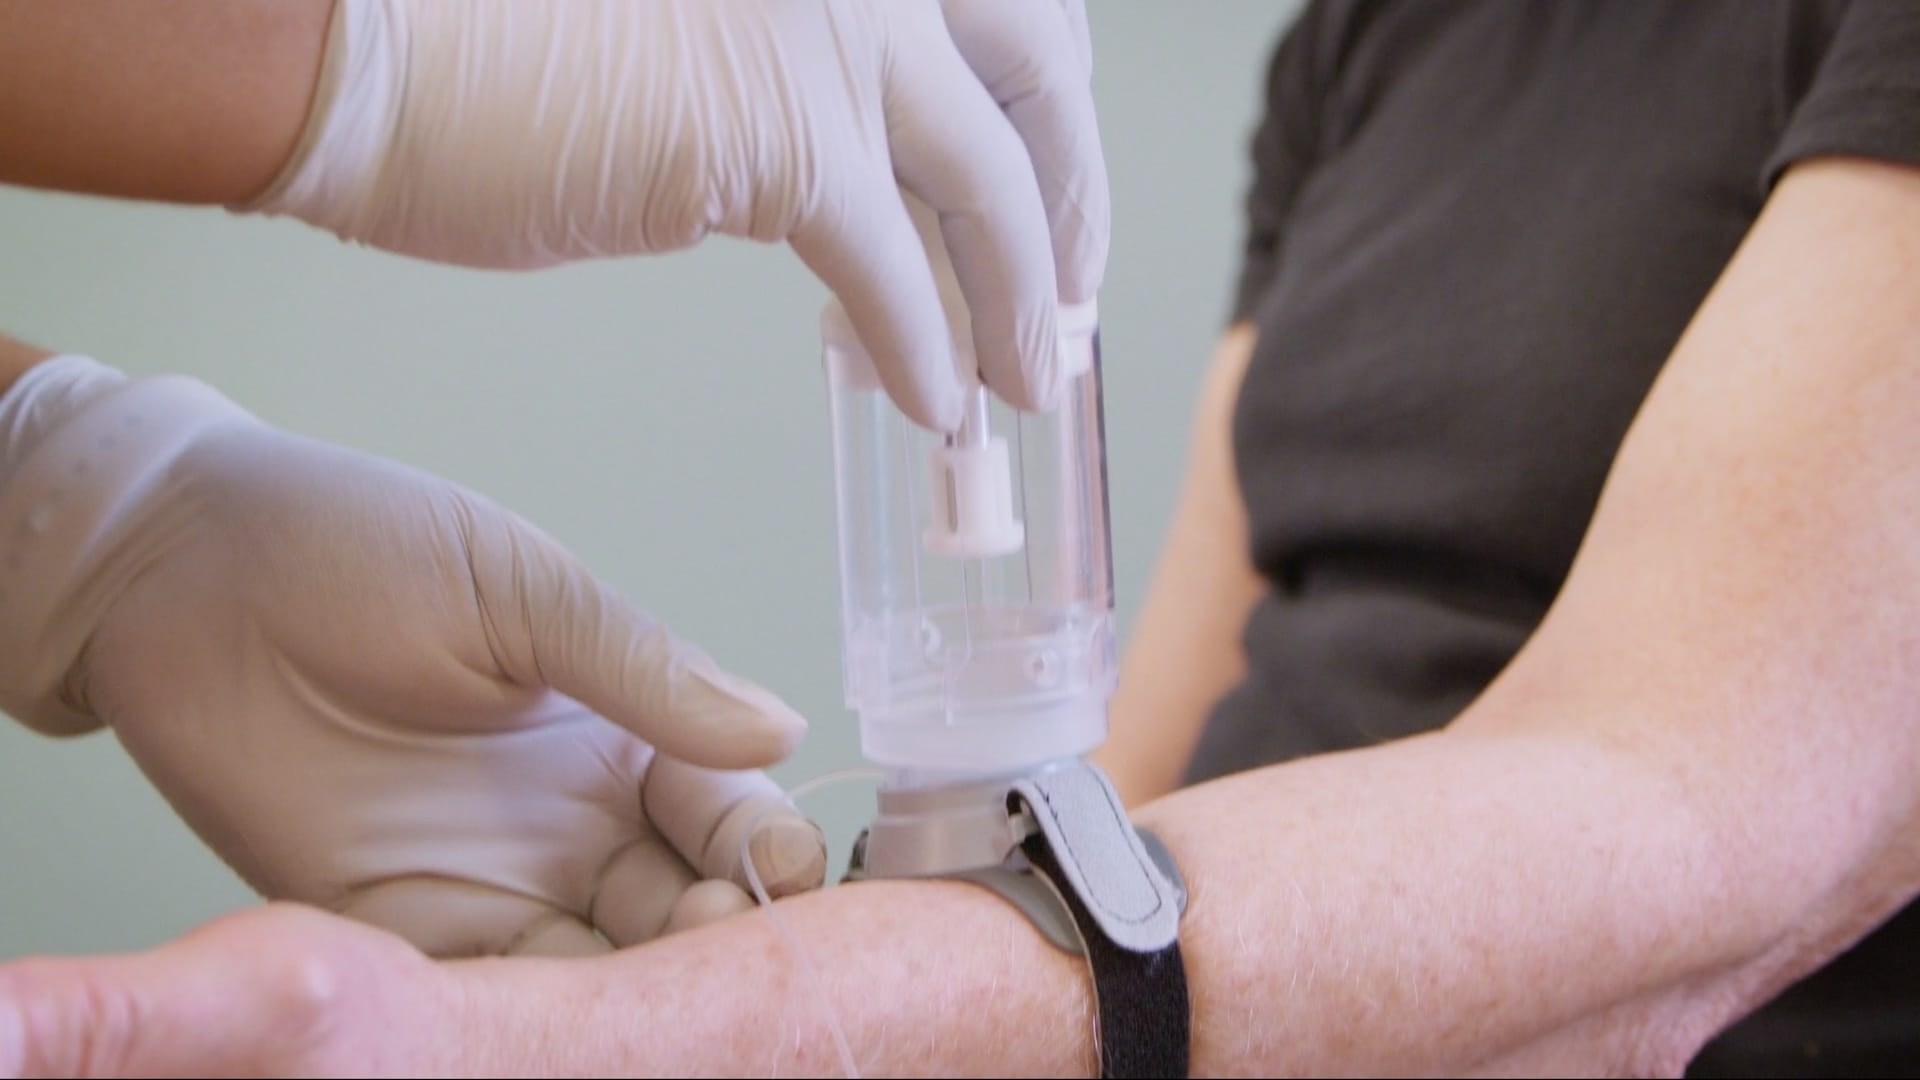 A medical professional uses Sofusa DoseConnect to administer a dose during a clinical trial.